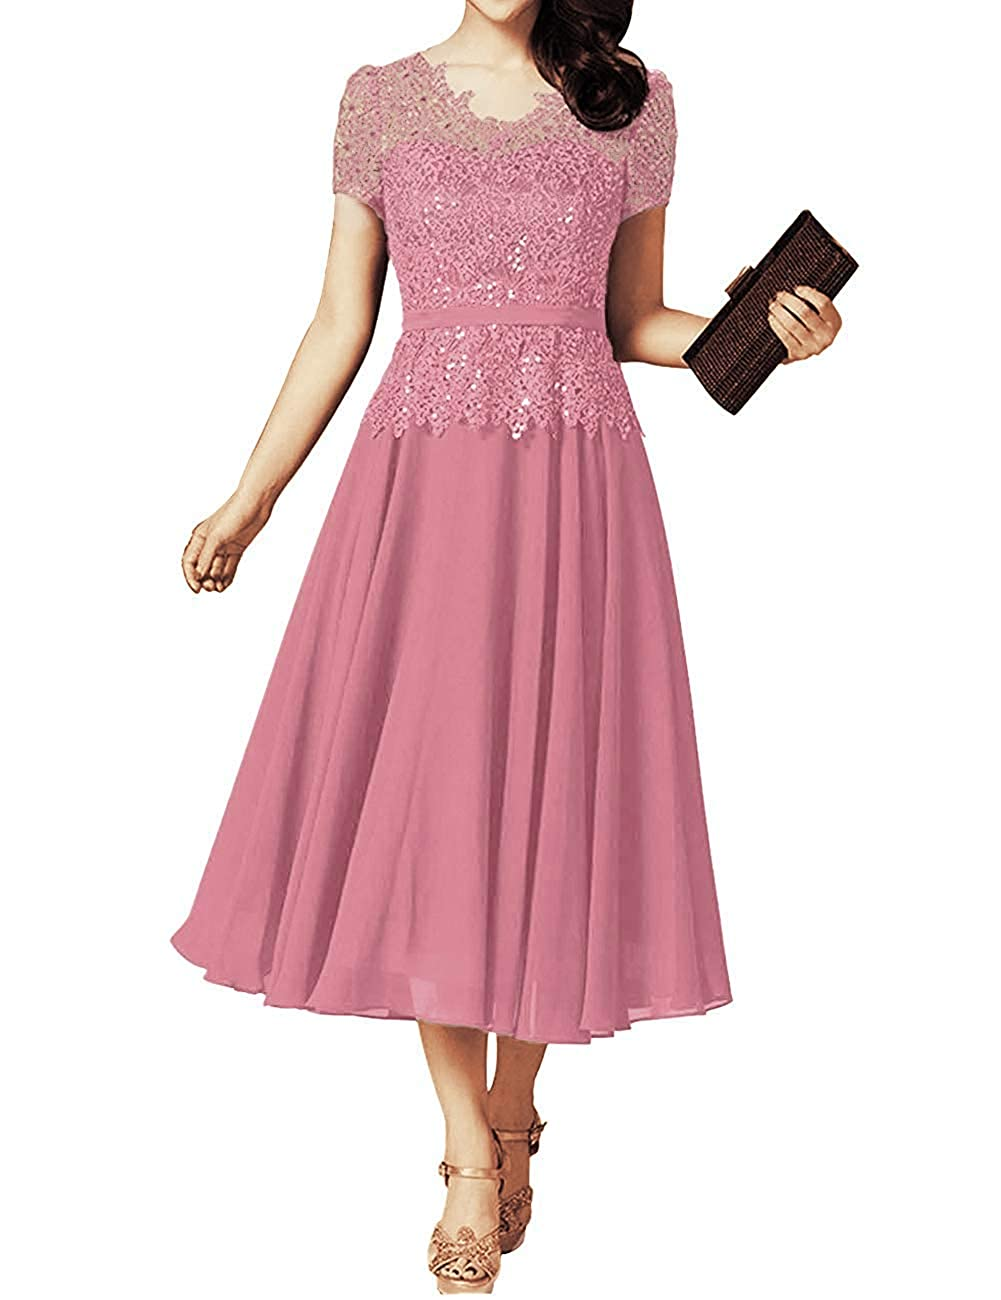 Dusty pink JINGDRESS Tea Length V Neck Mother of The Bride Dresses with Cap Sleeves A Line Pleated Evening Cocktail Gowns